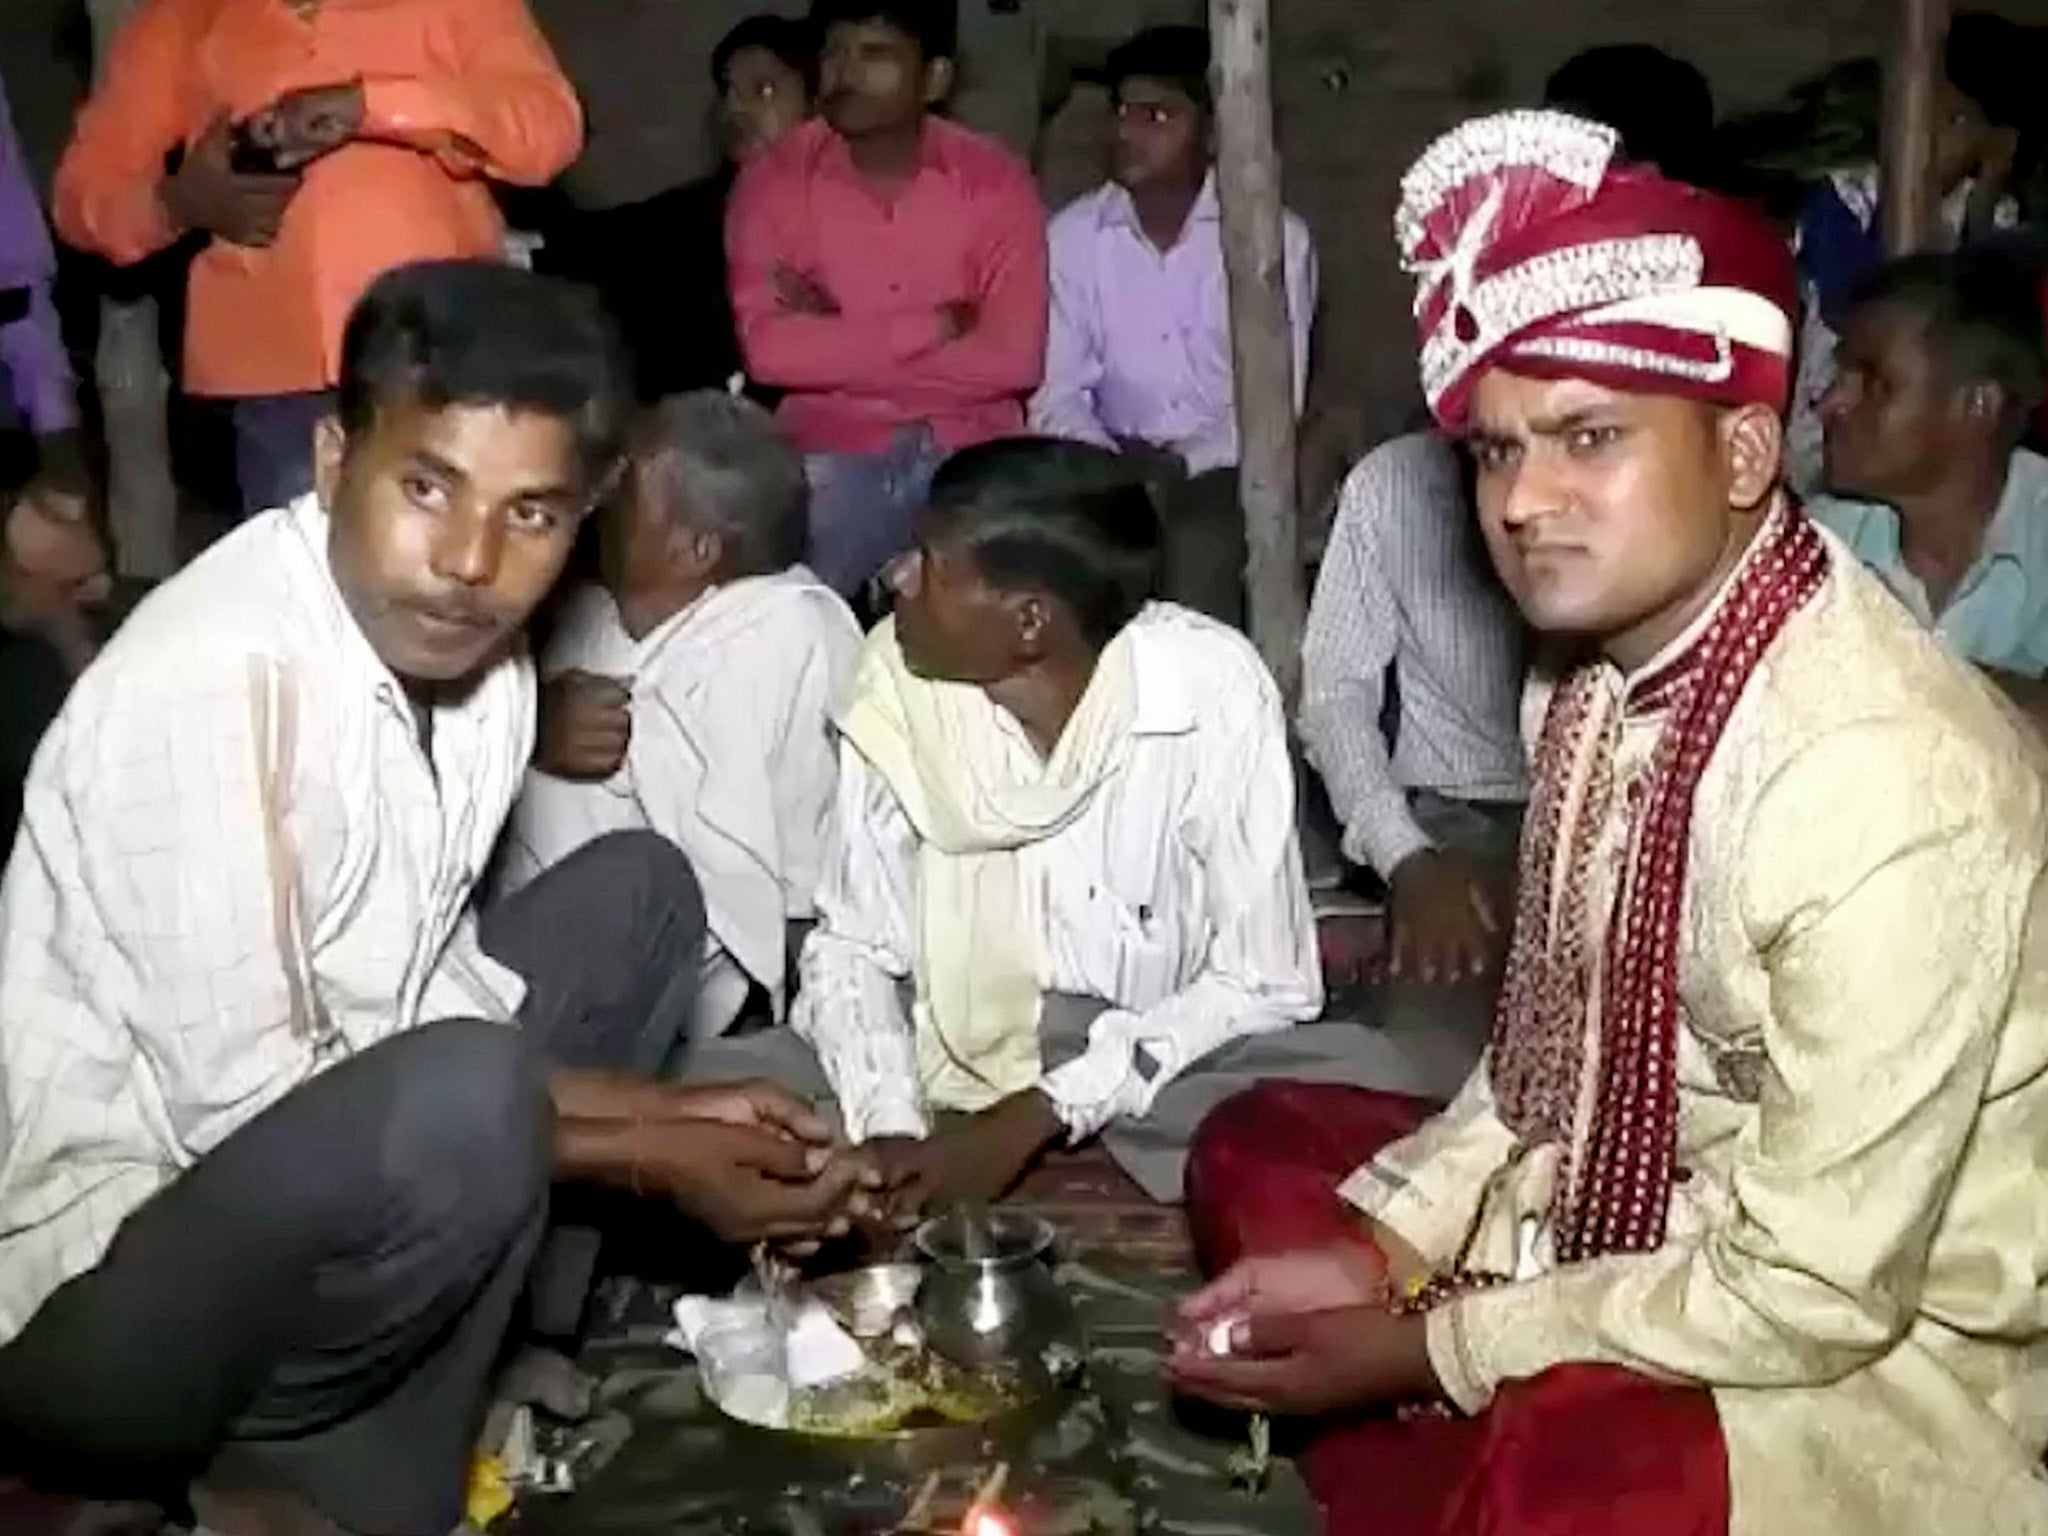 Video captures groom being shot dead at his wedding in India